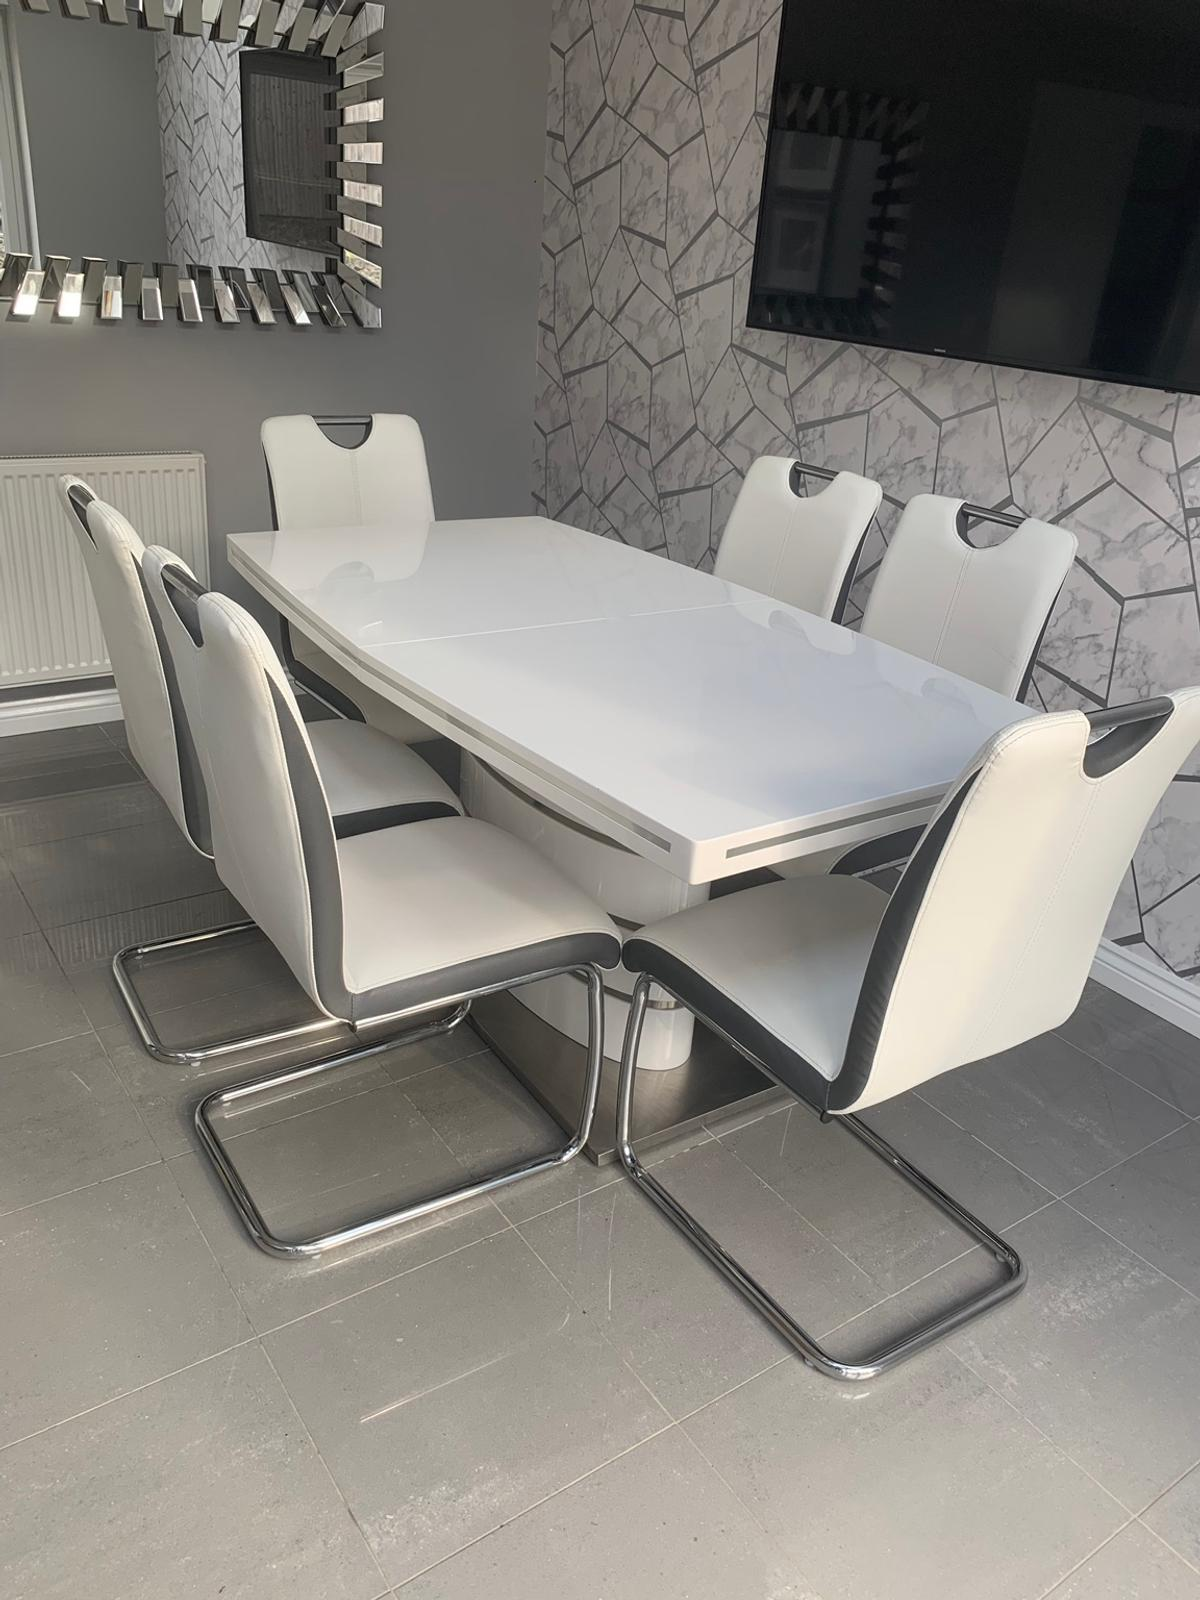 High Gloss Extending Dining Table 6 Chairs In S62 Rotherham Fur 250 00 Zum Verkauf Shpock At